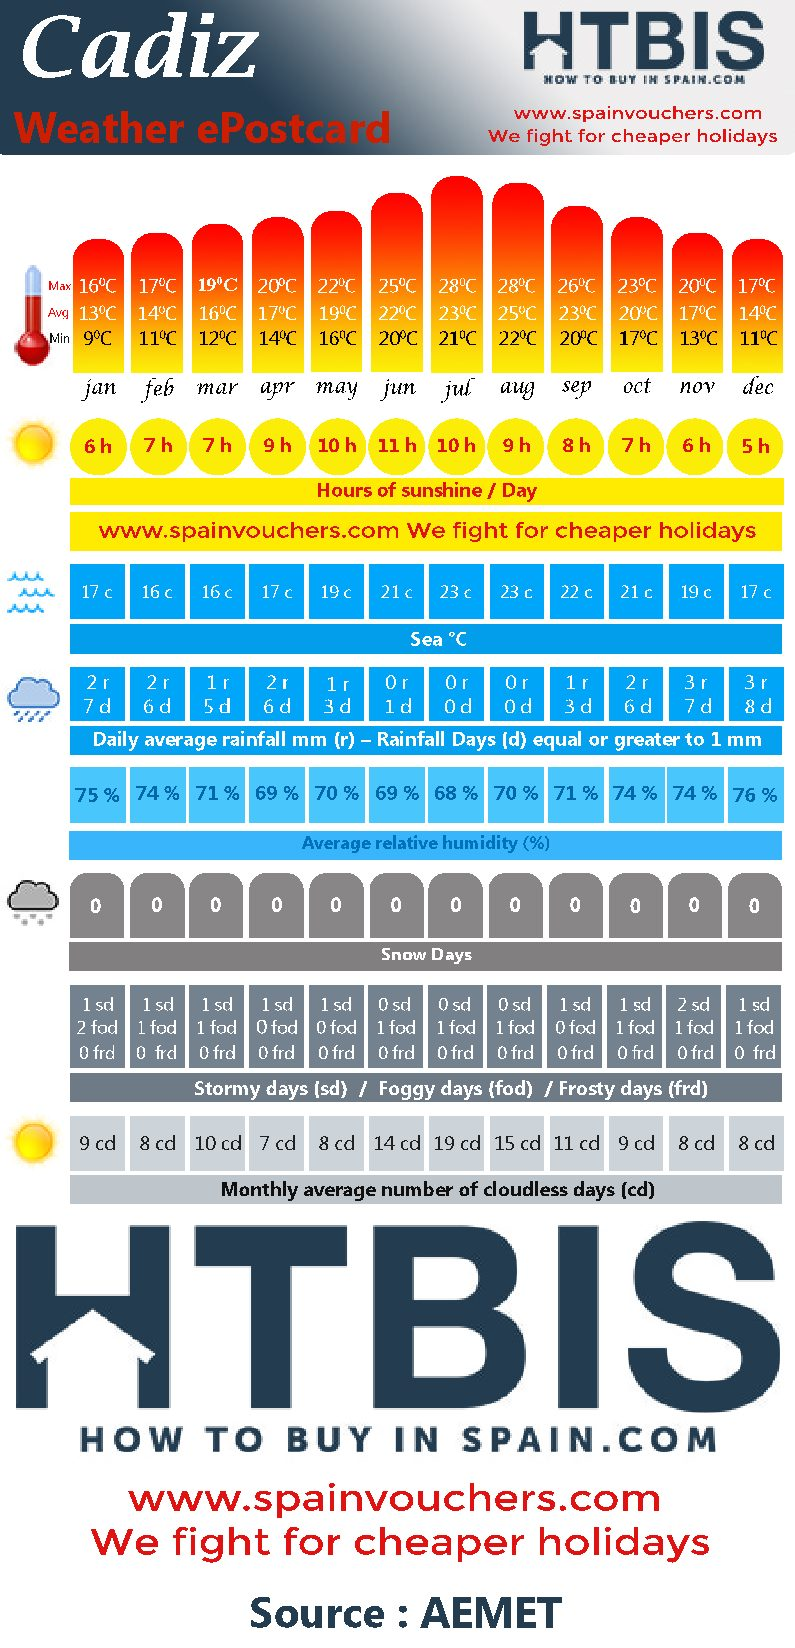 Cadiz, Weather statistic Infographic